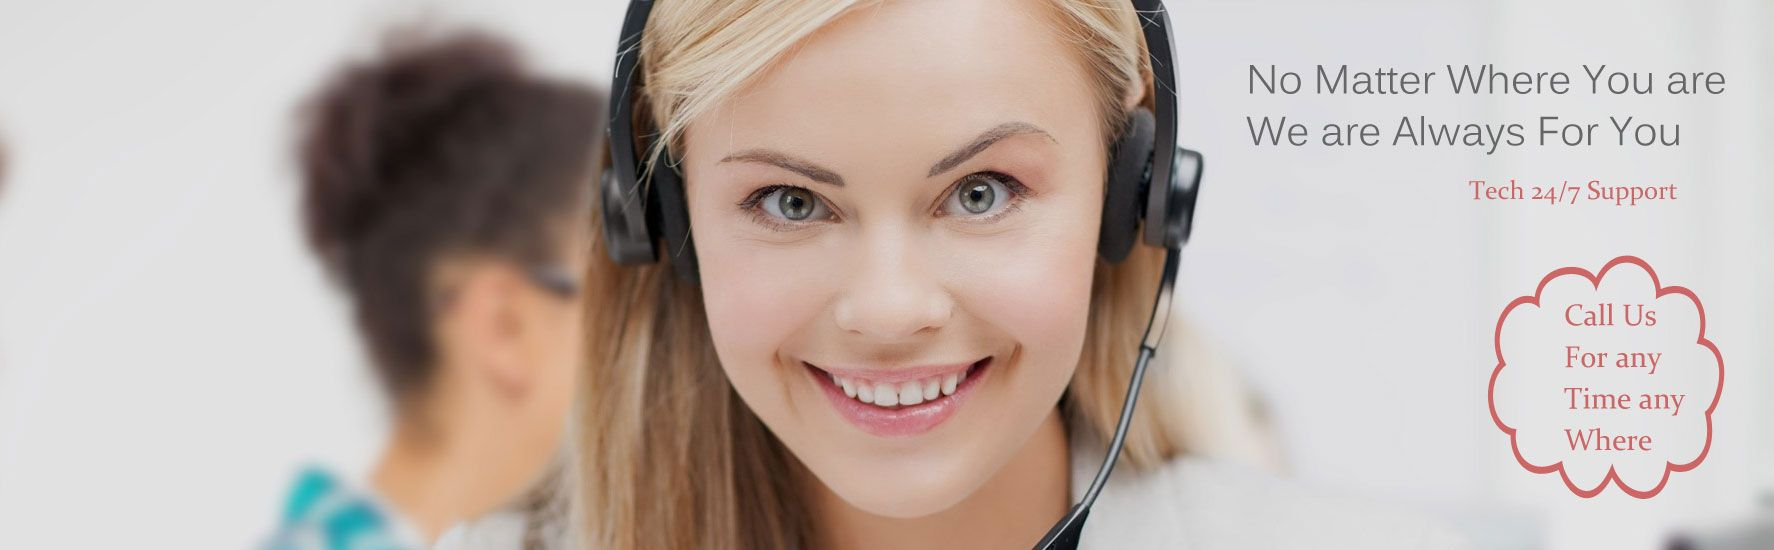 Outlook Technical Support 1(844) 311-0827 Phone Number and Call at toll free 1(844) 311-0827 for